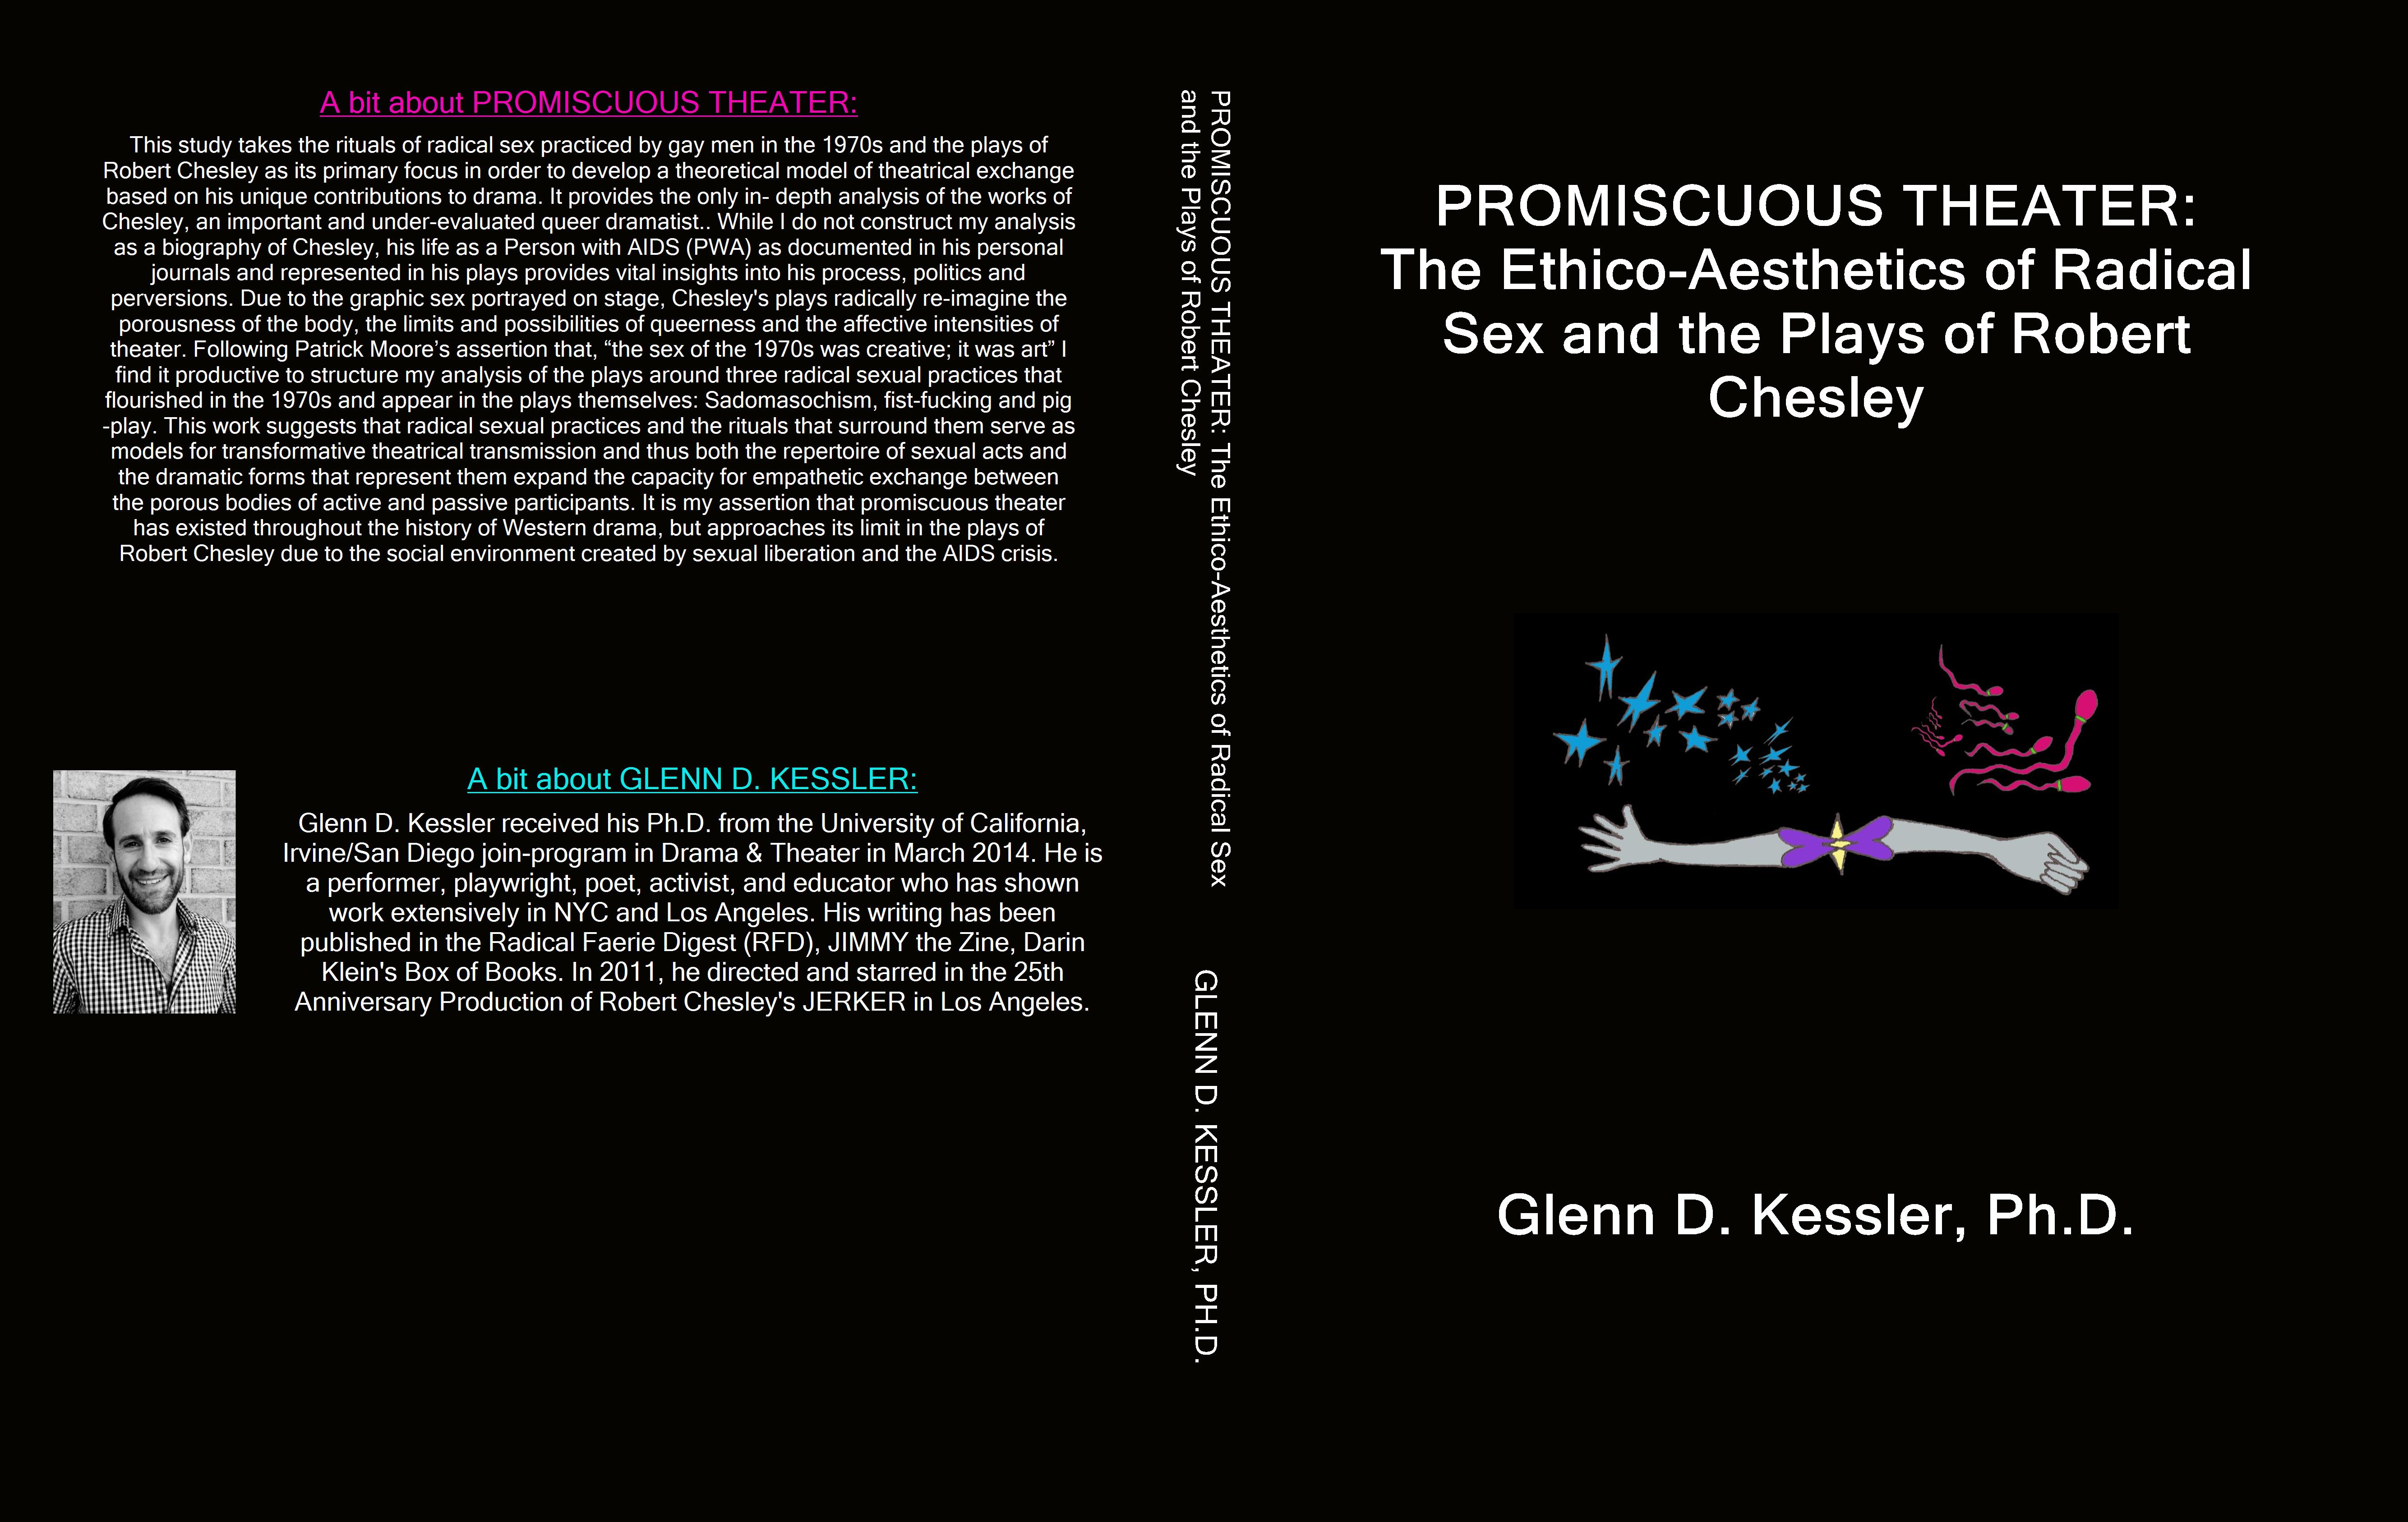 PROMISCUOUS THEATER: The Ethico-Aesthetics of Radical Sex and the Plays of Robert Chesley cover image